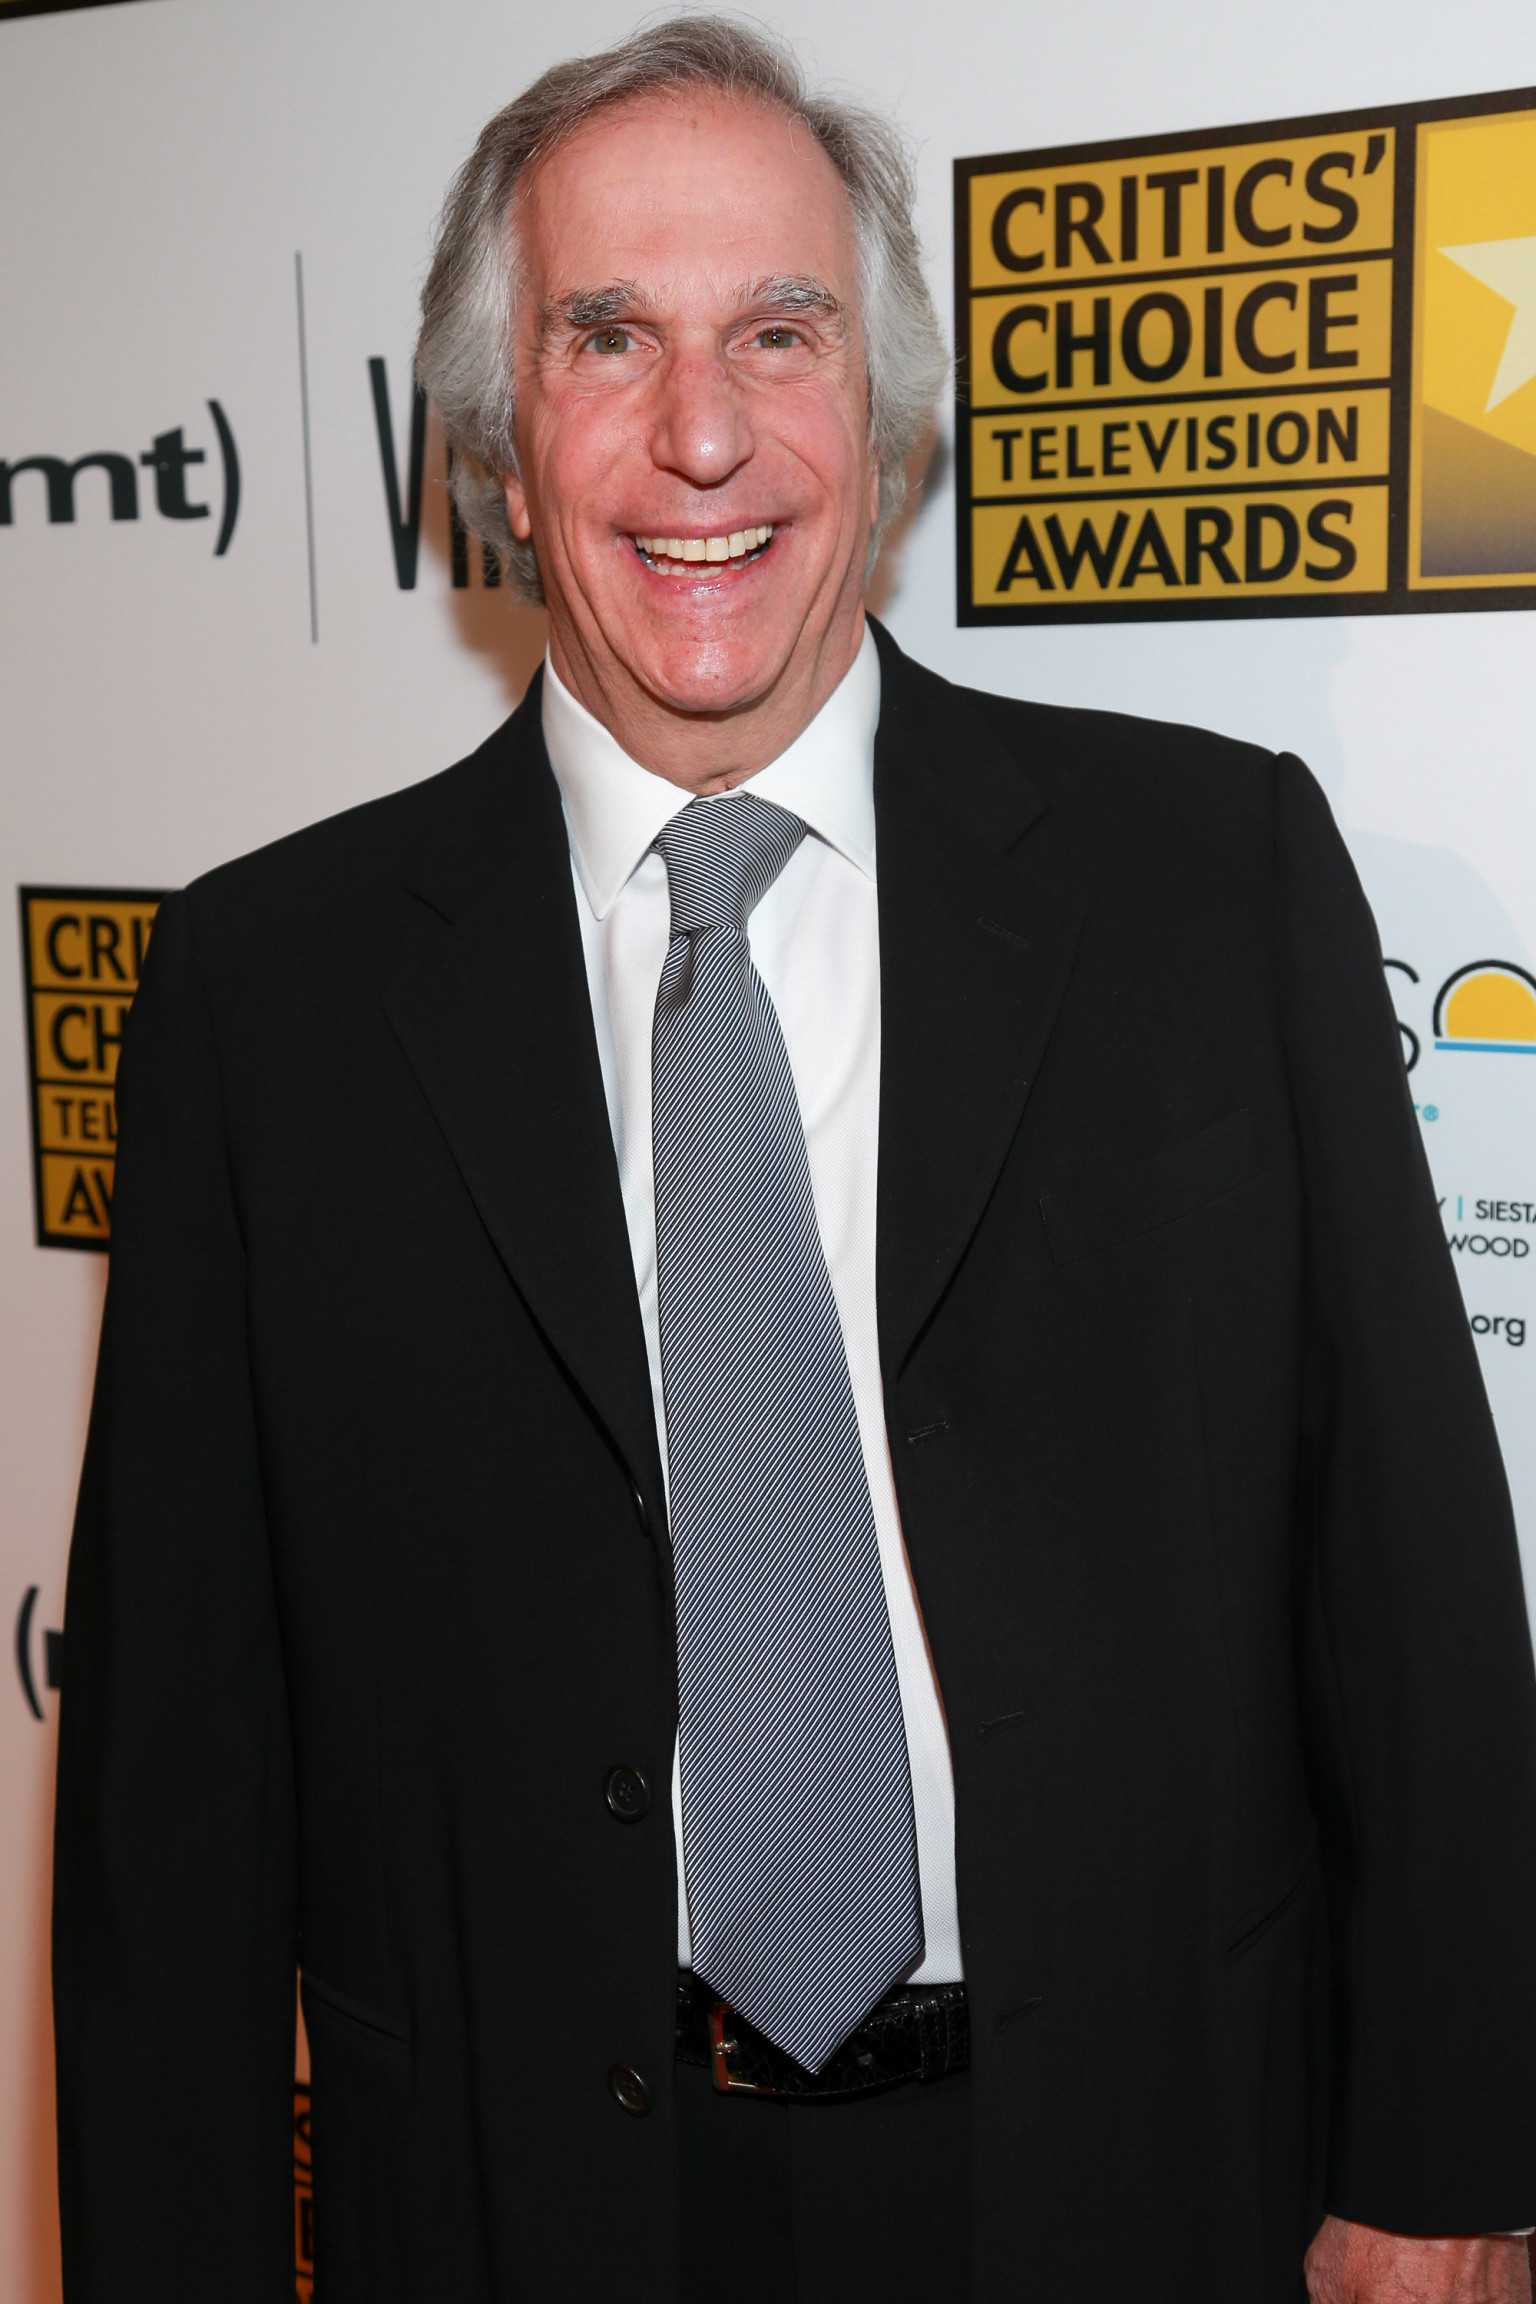 henry winkler reverse mortgagehenry winkler friends, henry winkler height, henry winkler, henry winkler net worth, henry winkler books, happy days henry winkler, henry winkler biography, henry winkler imdb, henry winkler movies, henry winkler dead, henry winkler gay, henry winkler wife, henry winkler christmas movie, henry winkler twitter, henry winkler reverse mortgage, henry winkler macgyver, henry winkler dyslexia, henry winkler arrested development, henry winkler the fonz happy days, henry winkler house